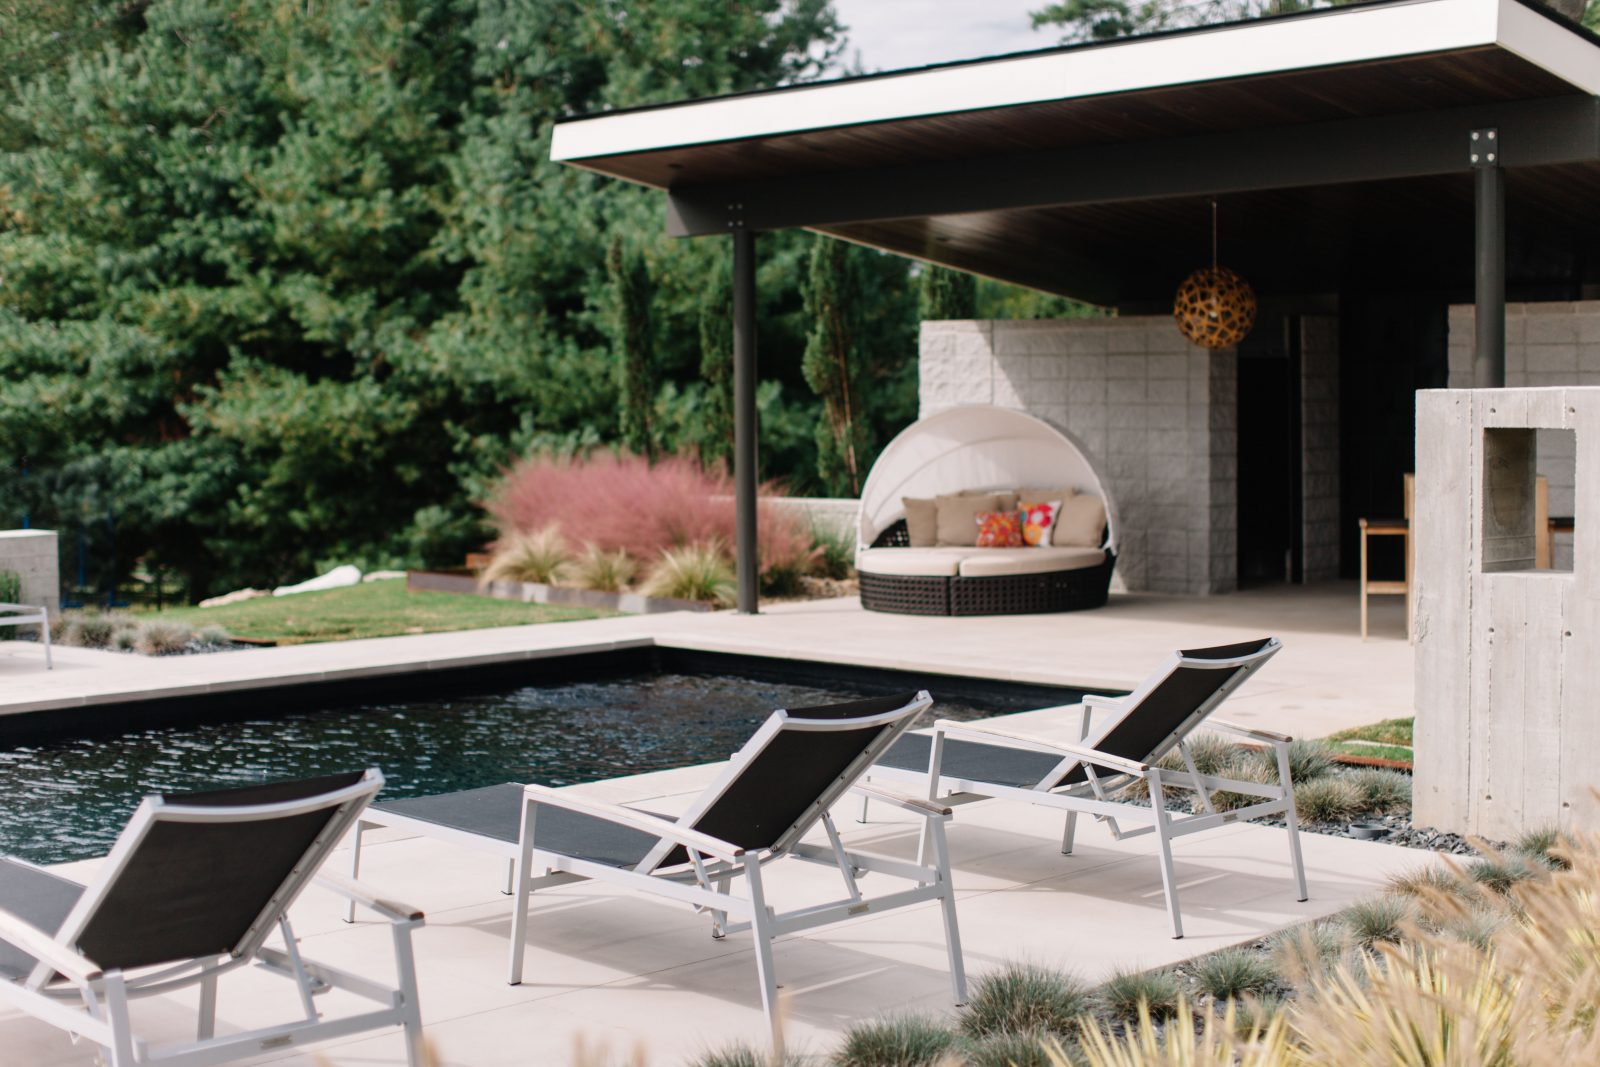 Outdoor pool sitting area and cabana space